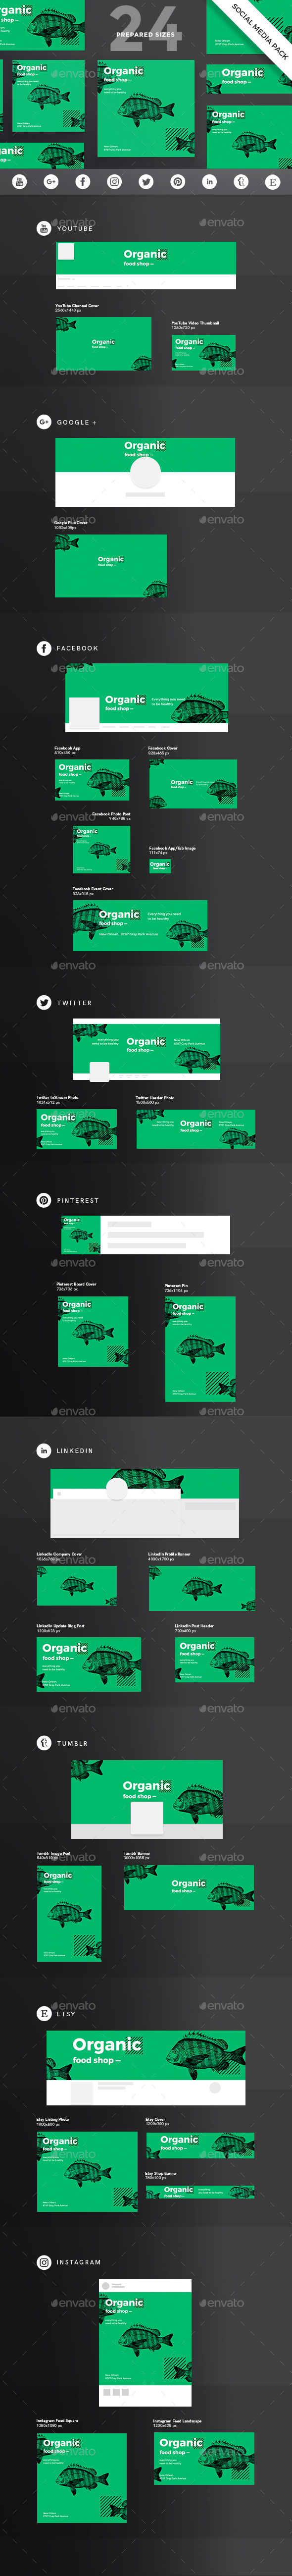 Organic Food Shop Social Media Pack - Miscellaneous Social Media